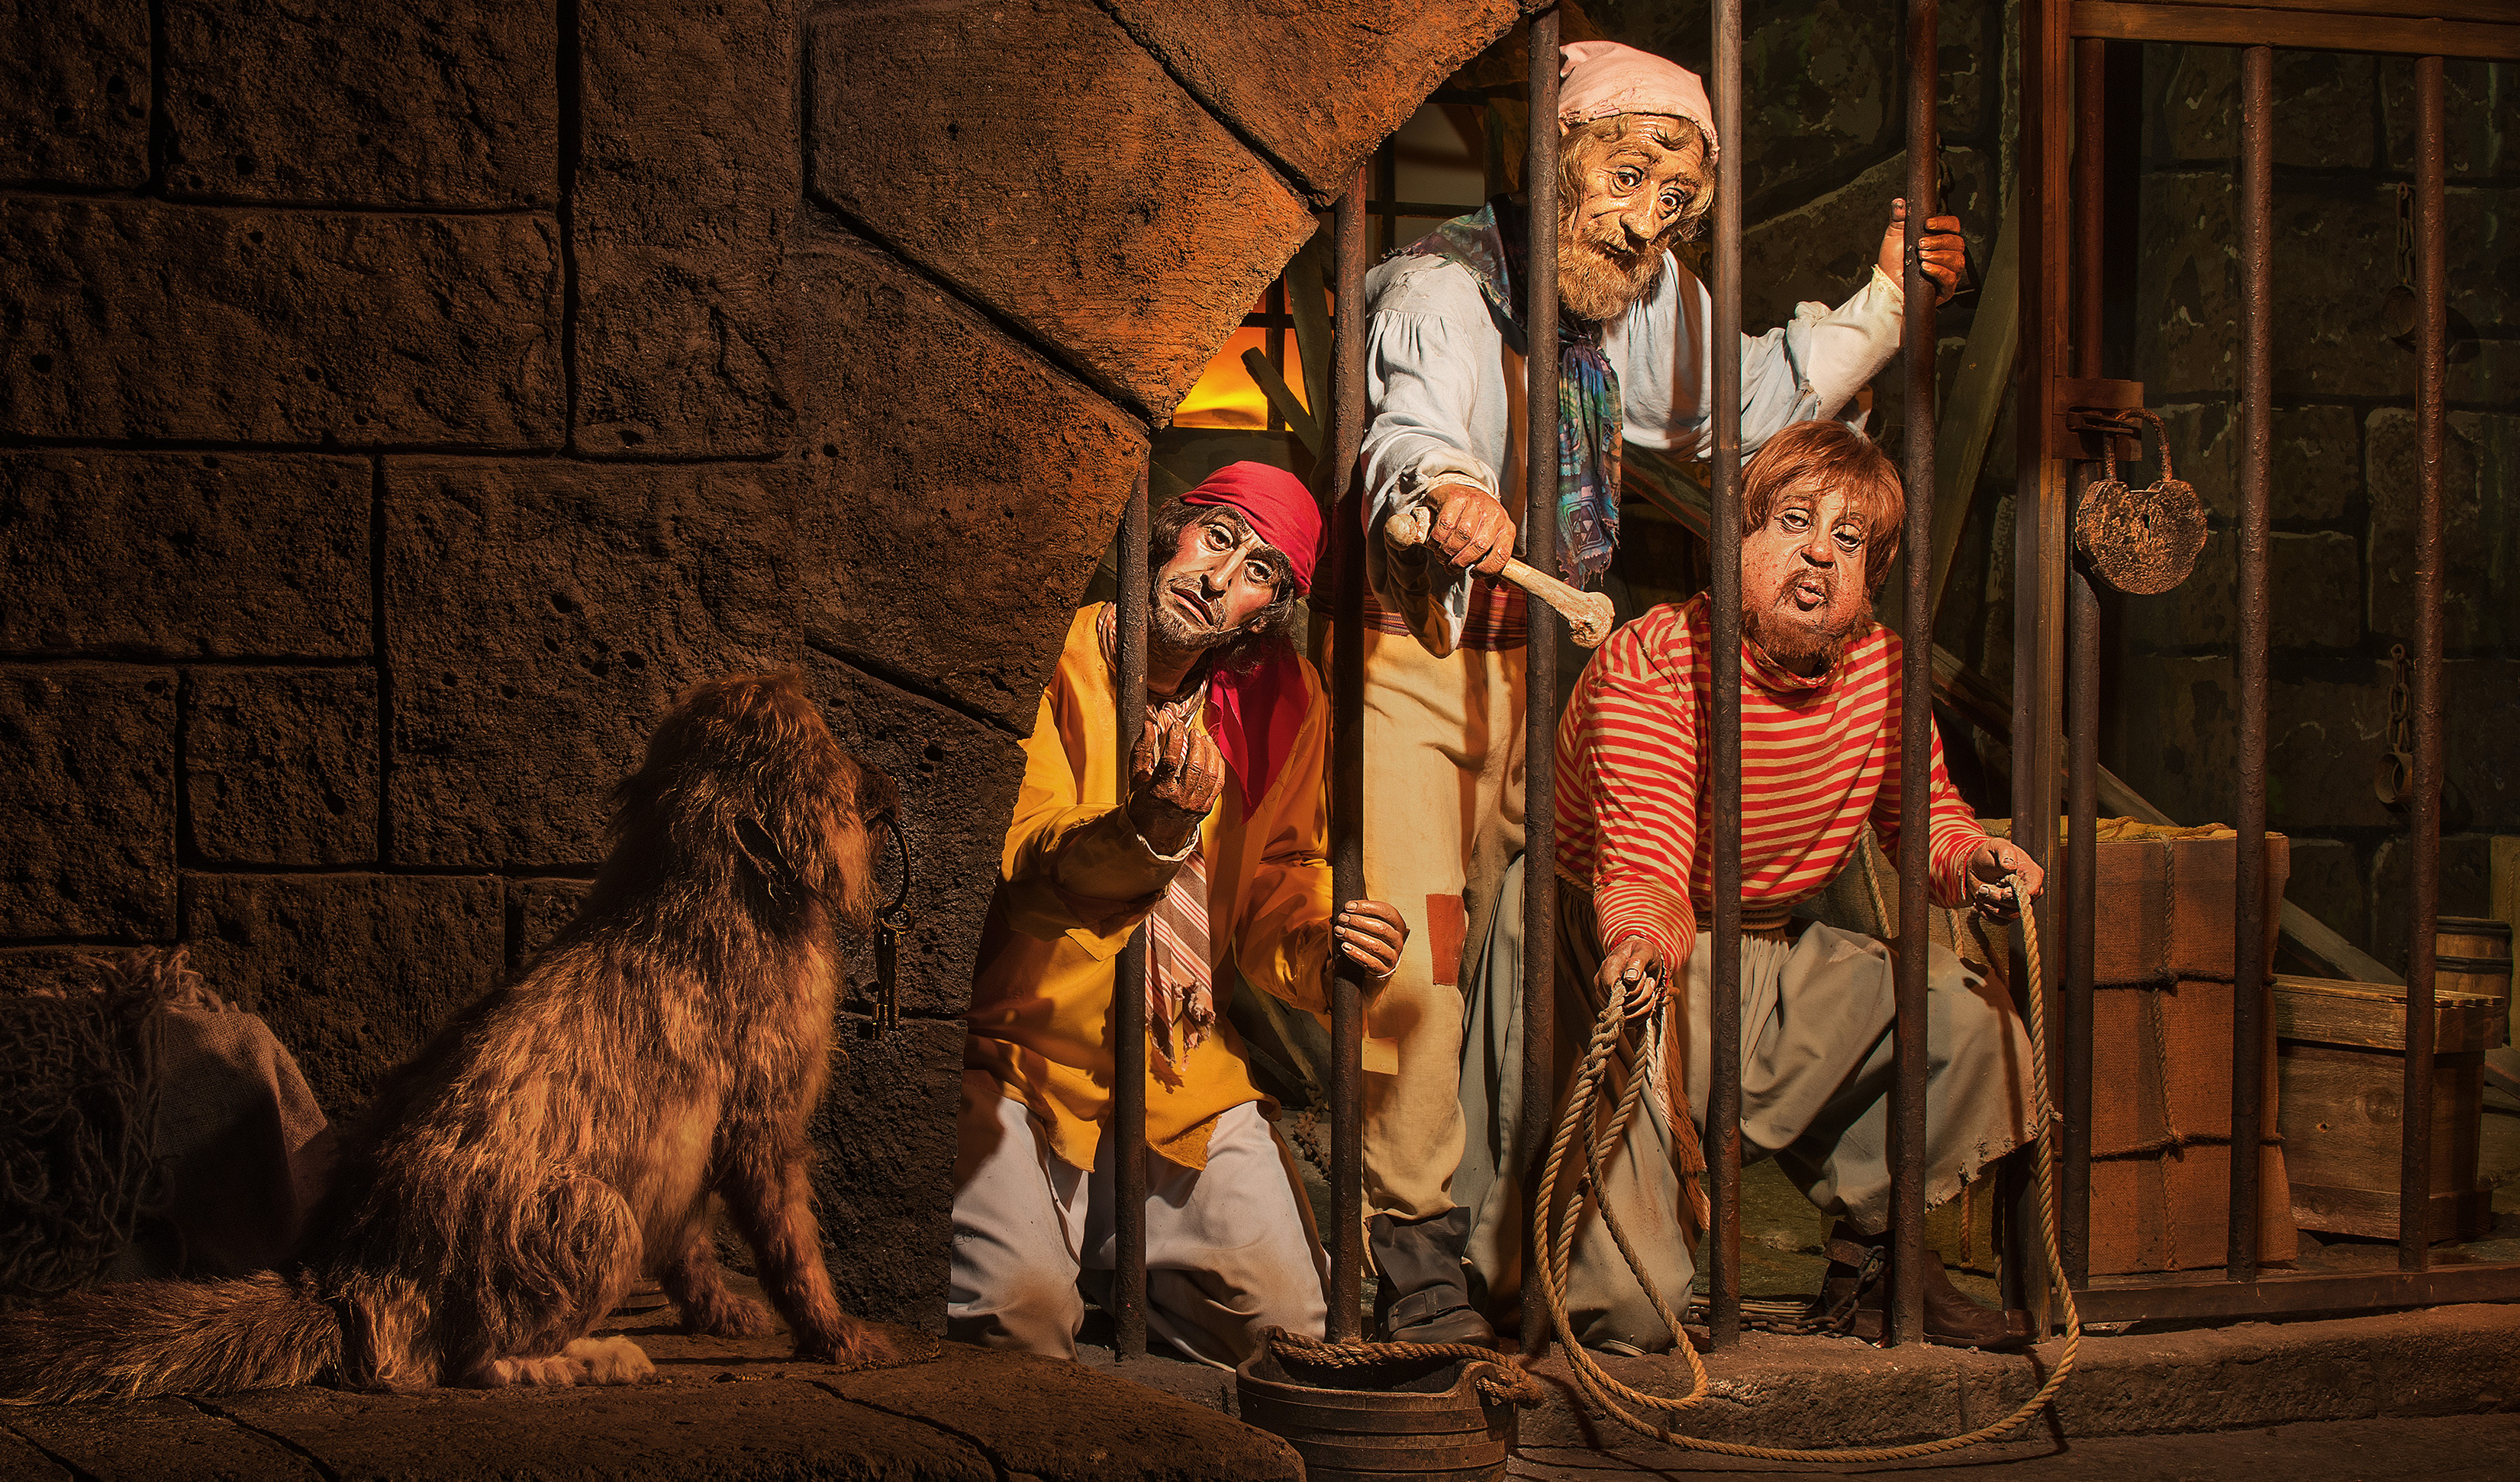 Piratas condenados intentan obtener las llaves de un perro en Pirates of the Caribbean en el Parque Temático Magic Kingdom